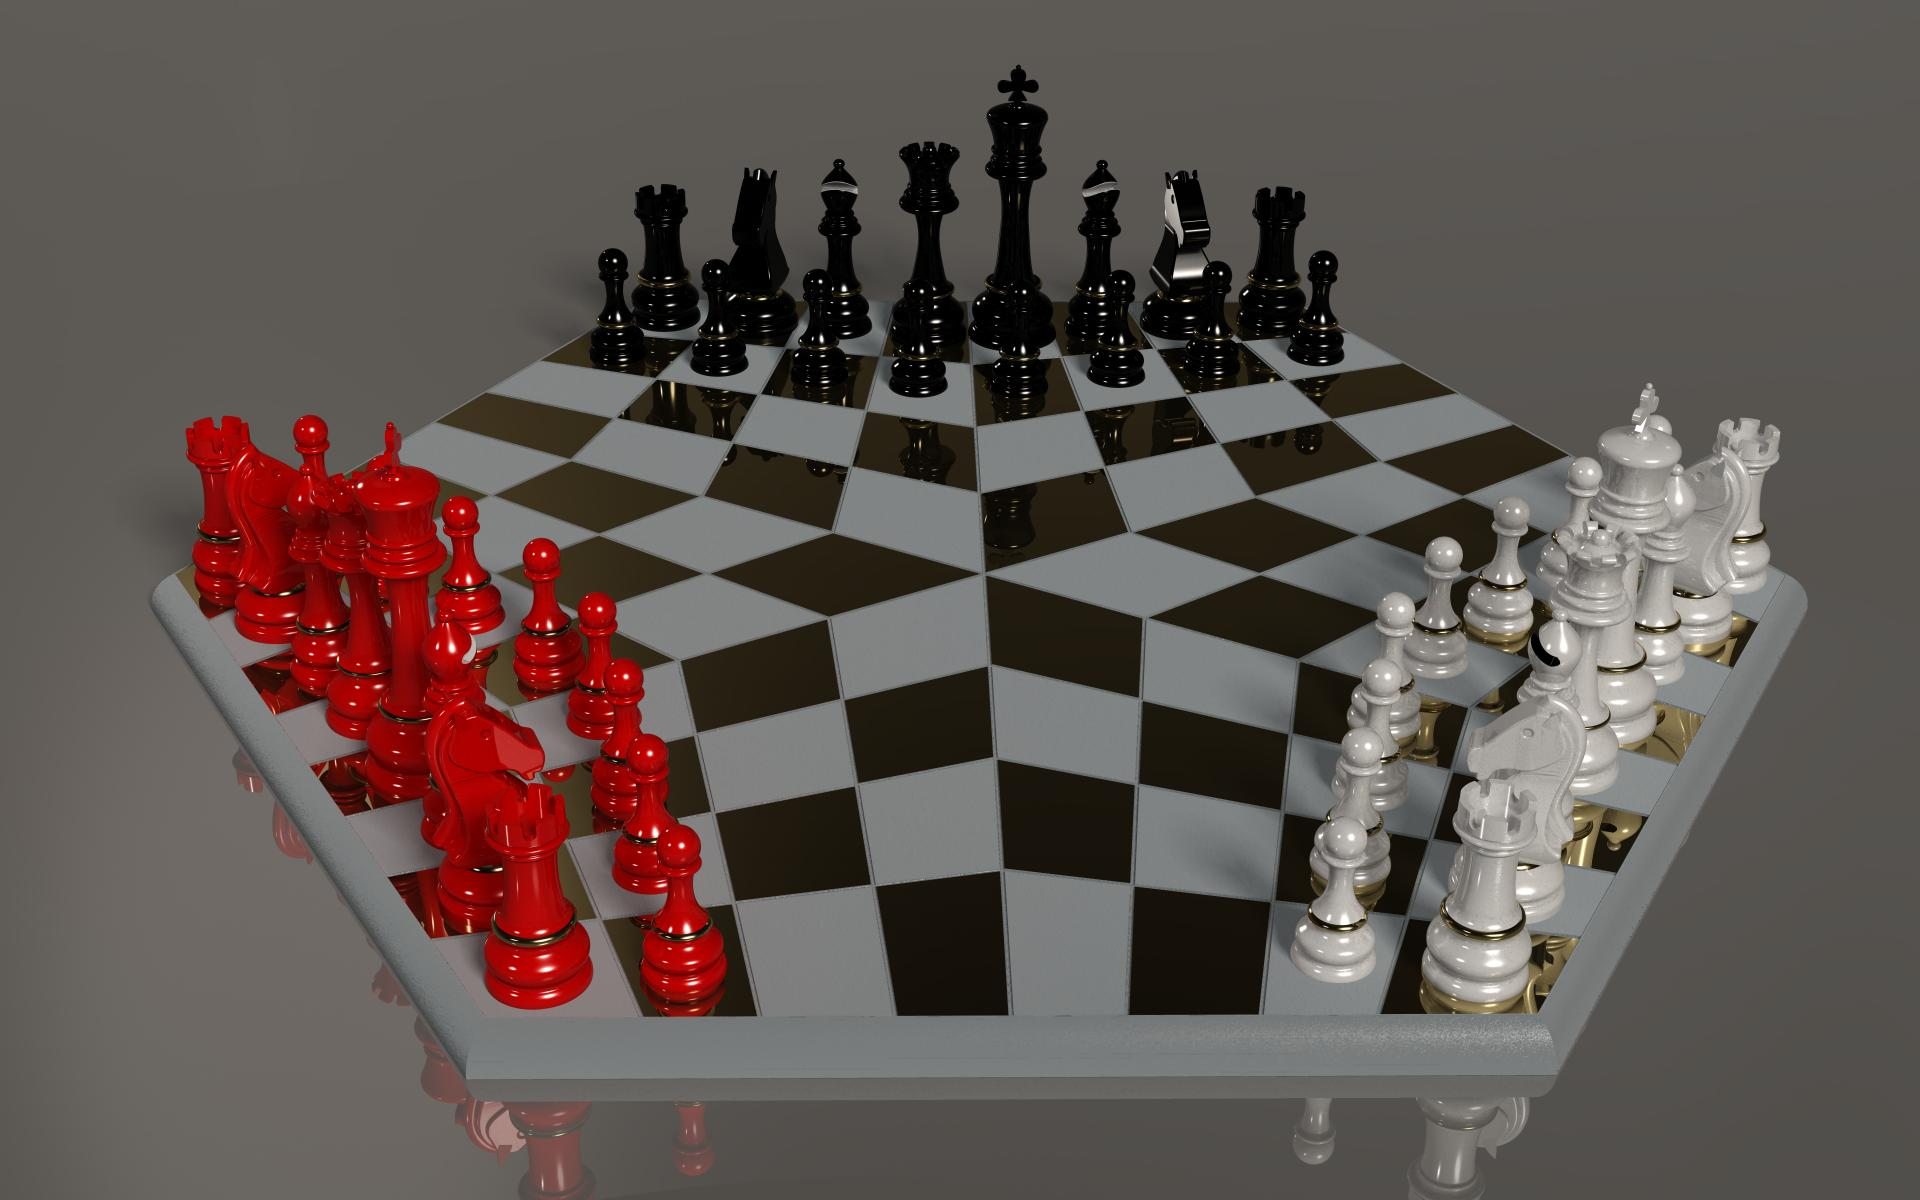 wallpaper_chess-for-three_a_1920x1200.jpg